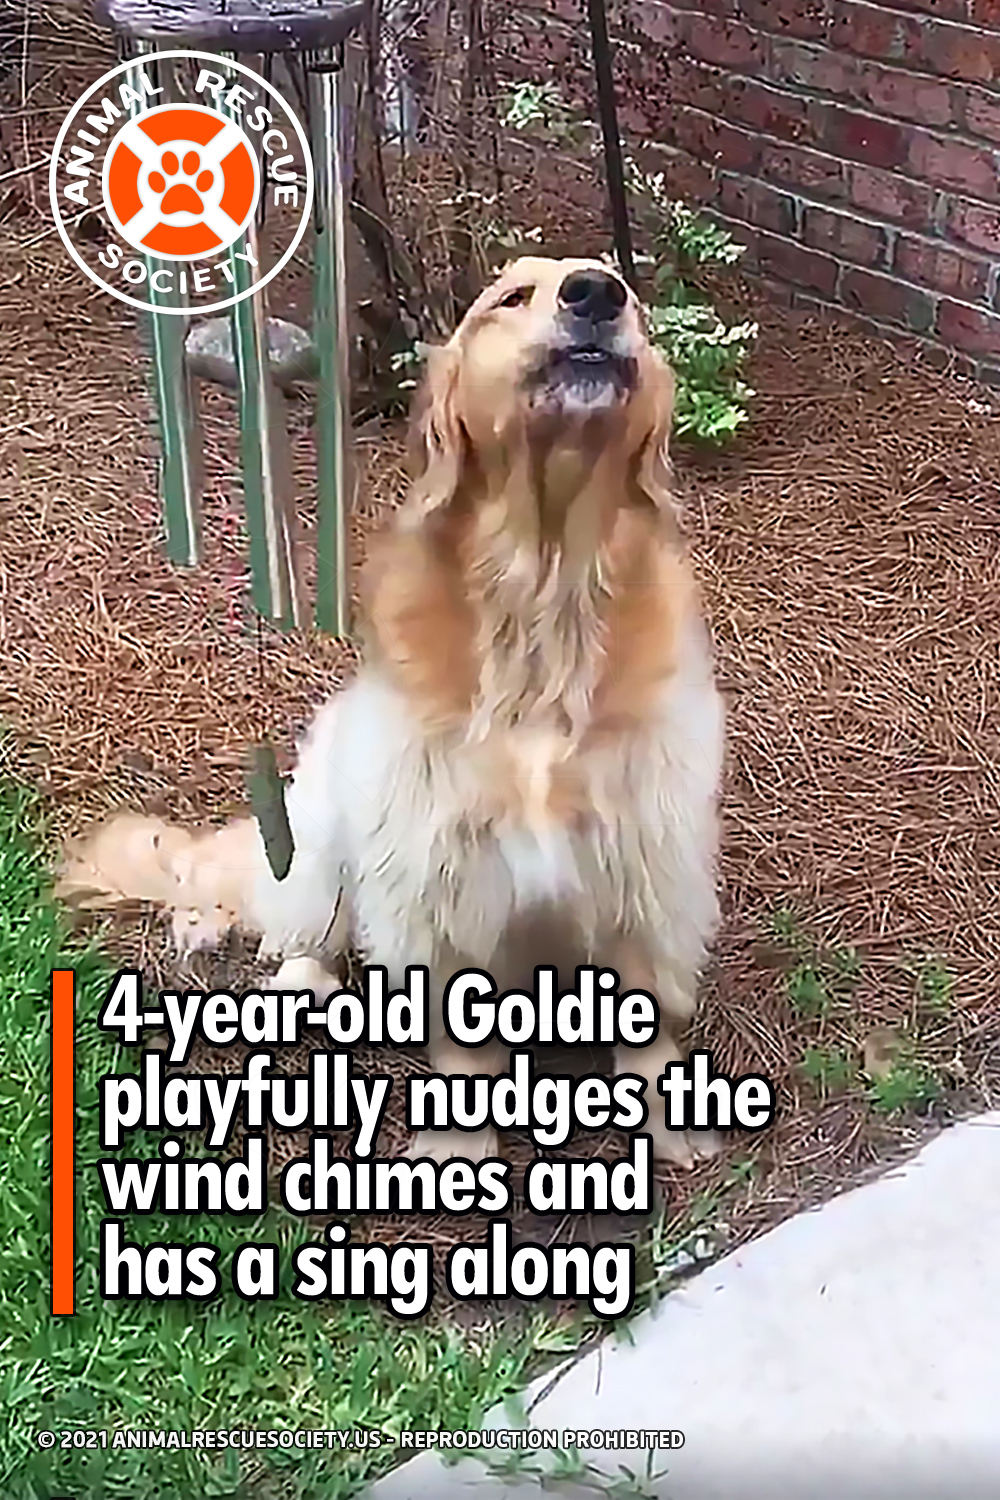 4-year-old Goldie playfully nudges the wind chimes and has a sing along